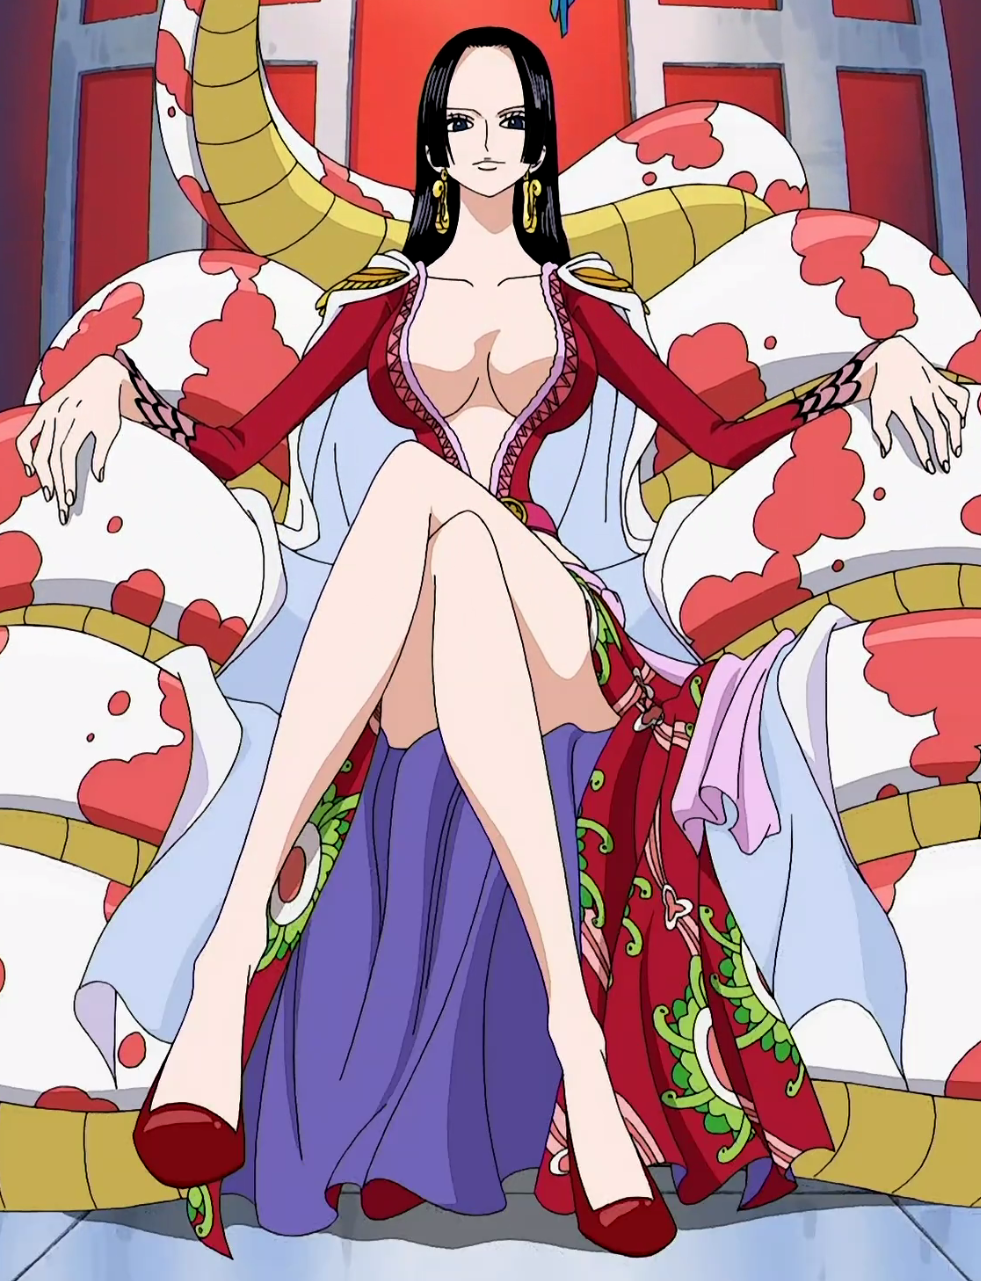 http://img3.wikia.nocookie.net/__cb20130113170951/onepiece/images/archive/f/f0/20130113171011!Boa_Hancock_Anime_Infobox.png